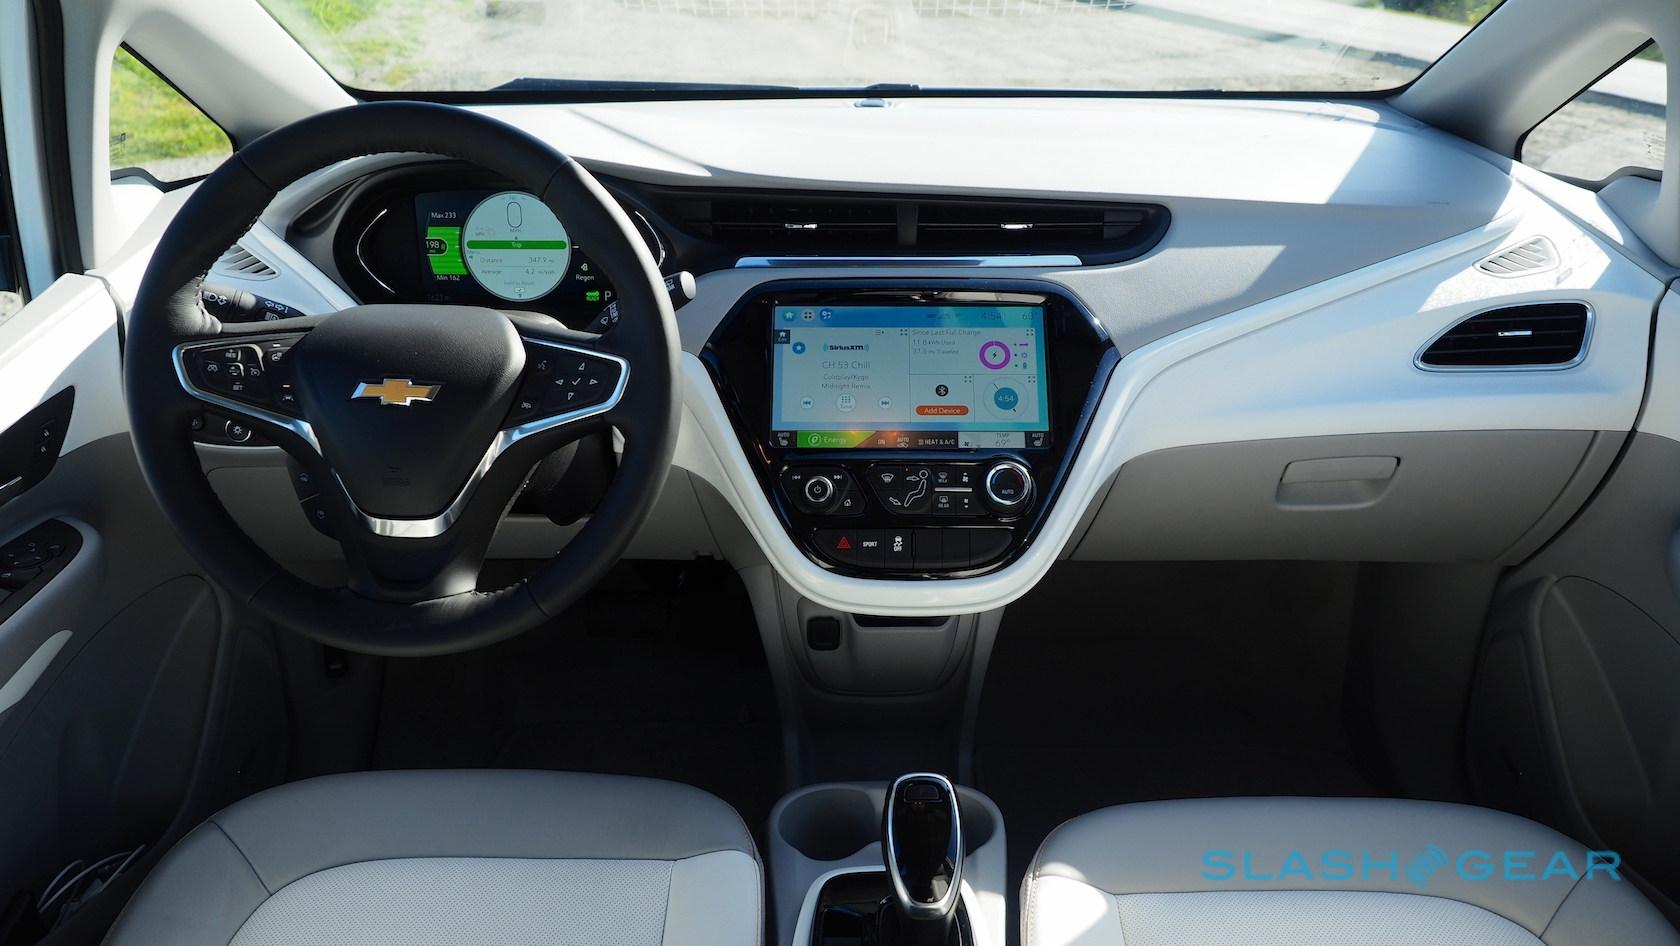 The Ability To Plug In A Small Liance Or Laptop Charger 110v Outlet Would Be Great Too But Chevrolet Doesn T Offer It